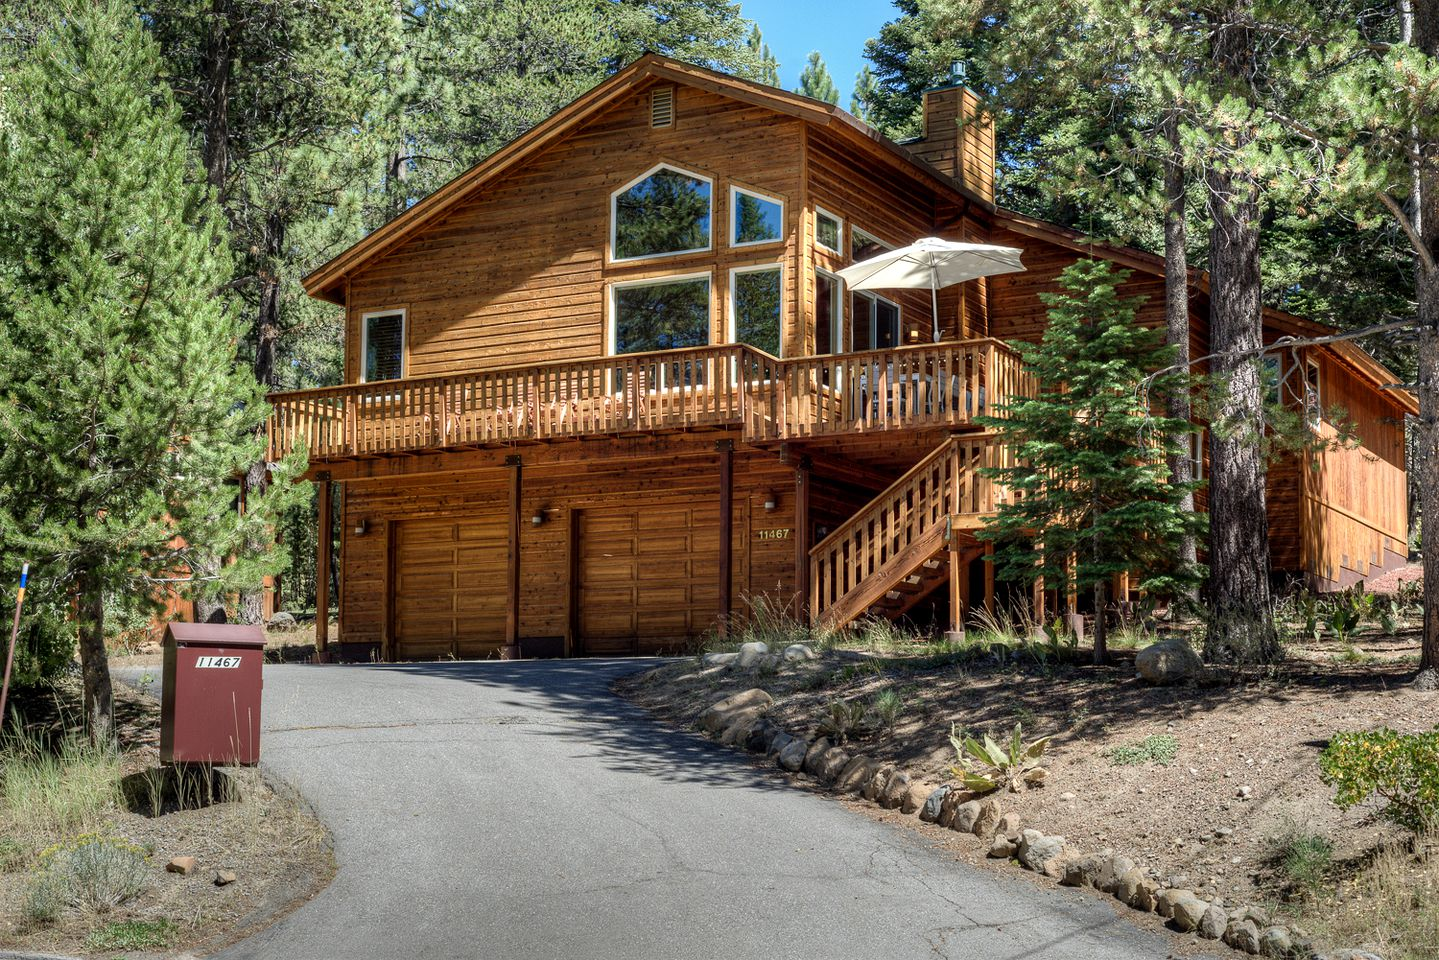 Cabins (Truckee, California, United States)